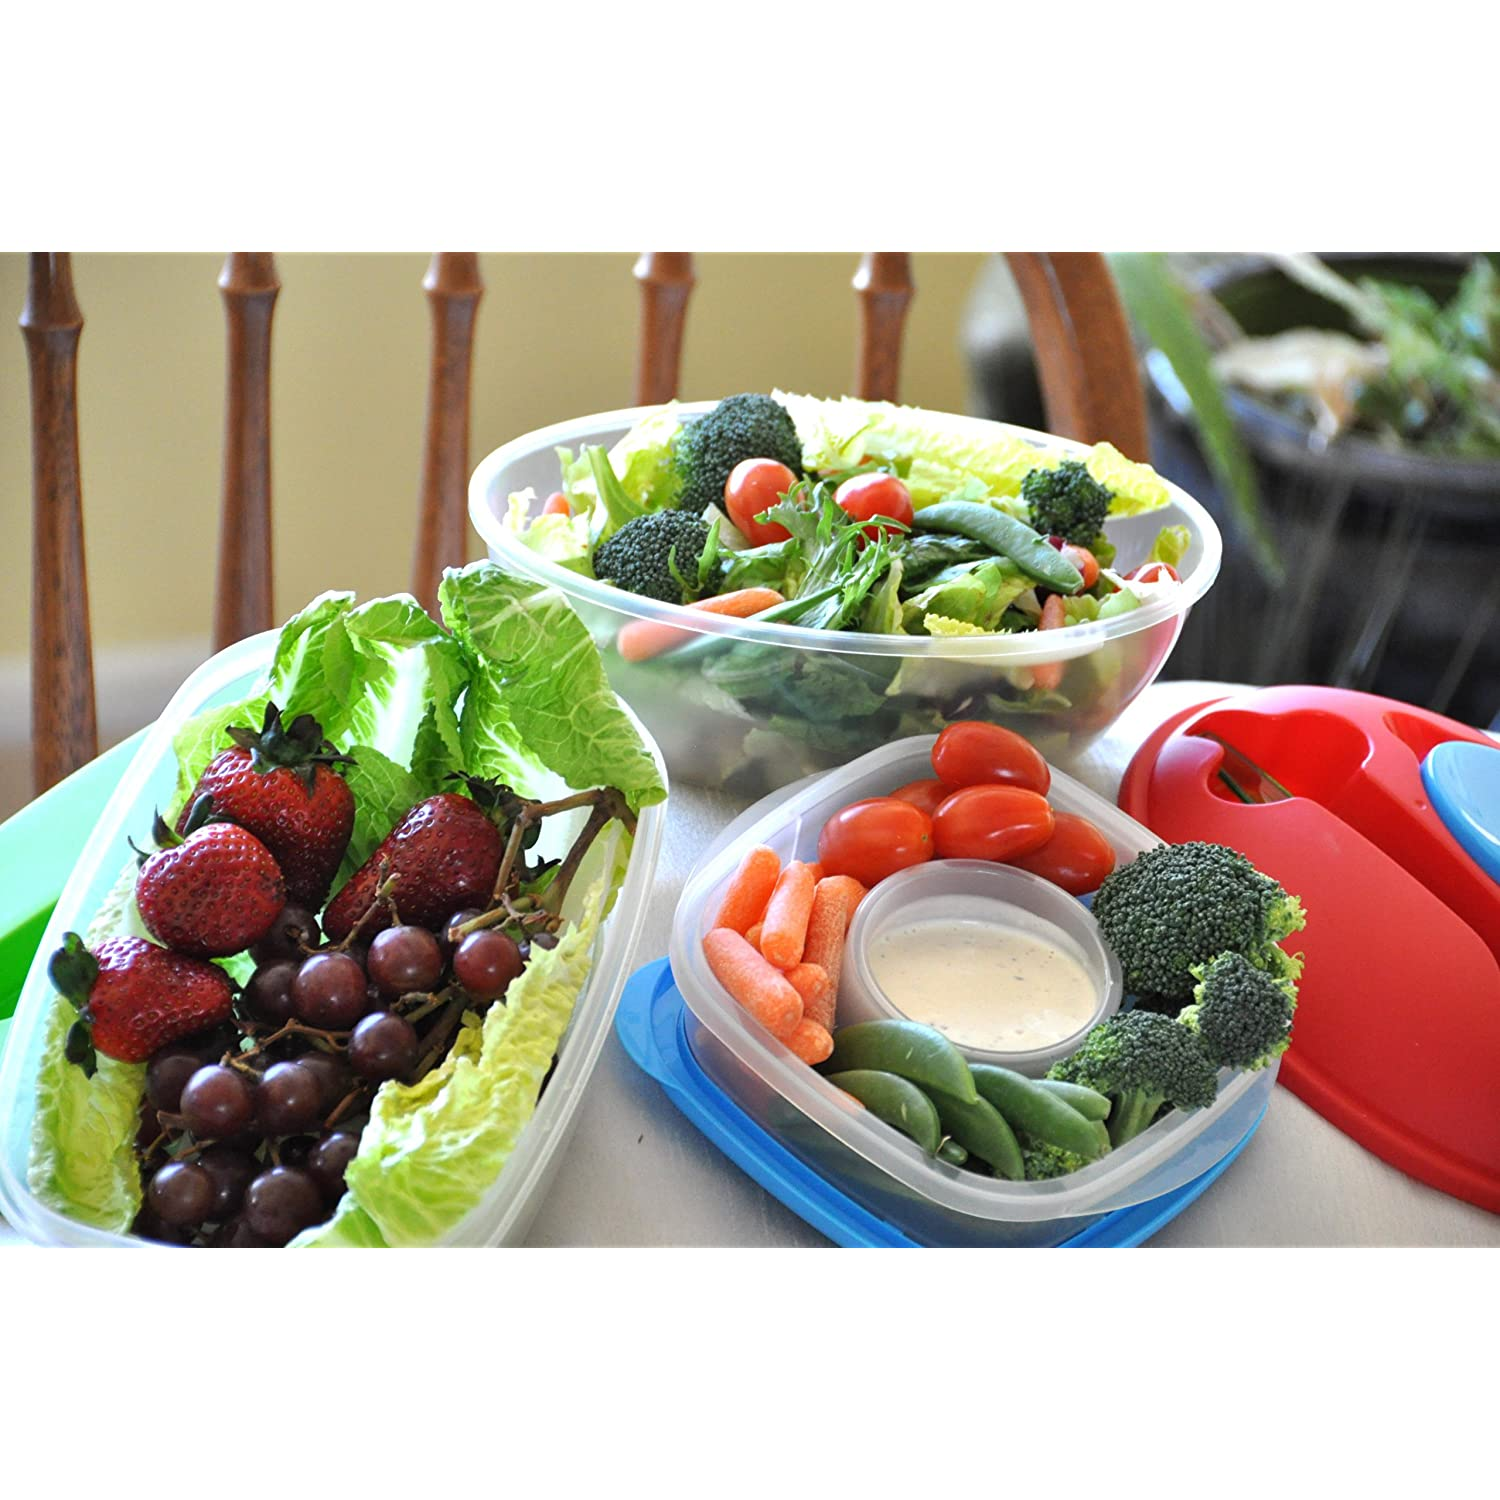 Lunch Box for Work 3 Shapes & Sizes-Salad, Food & Veggie Containers with Easy Open Lids Set of 3